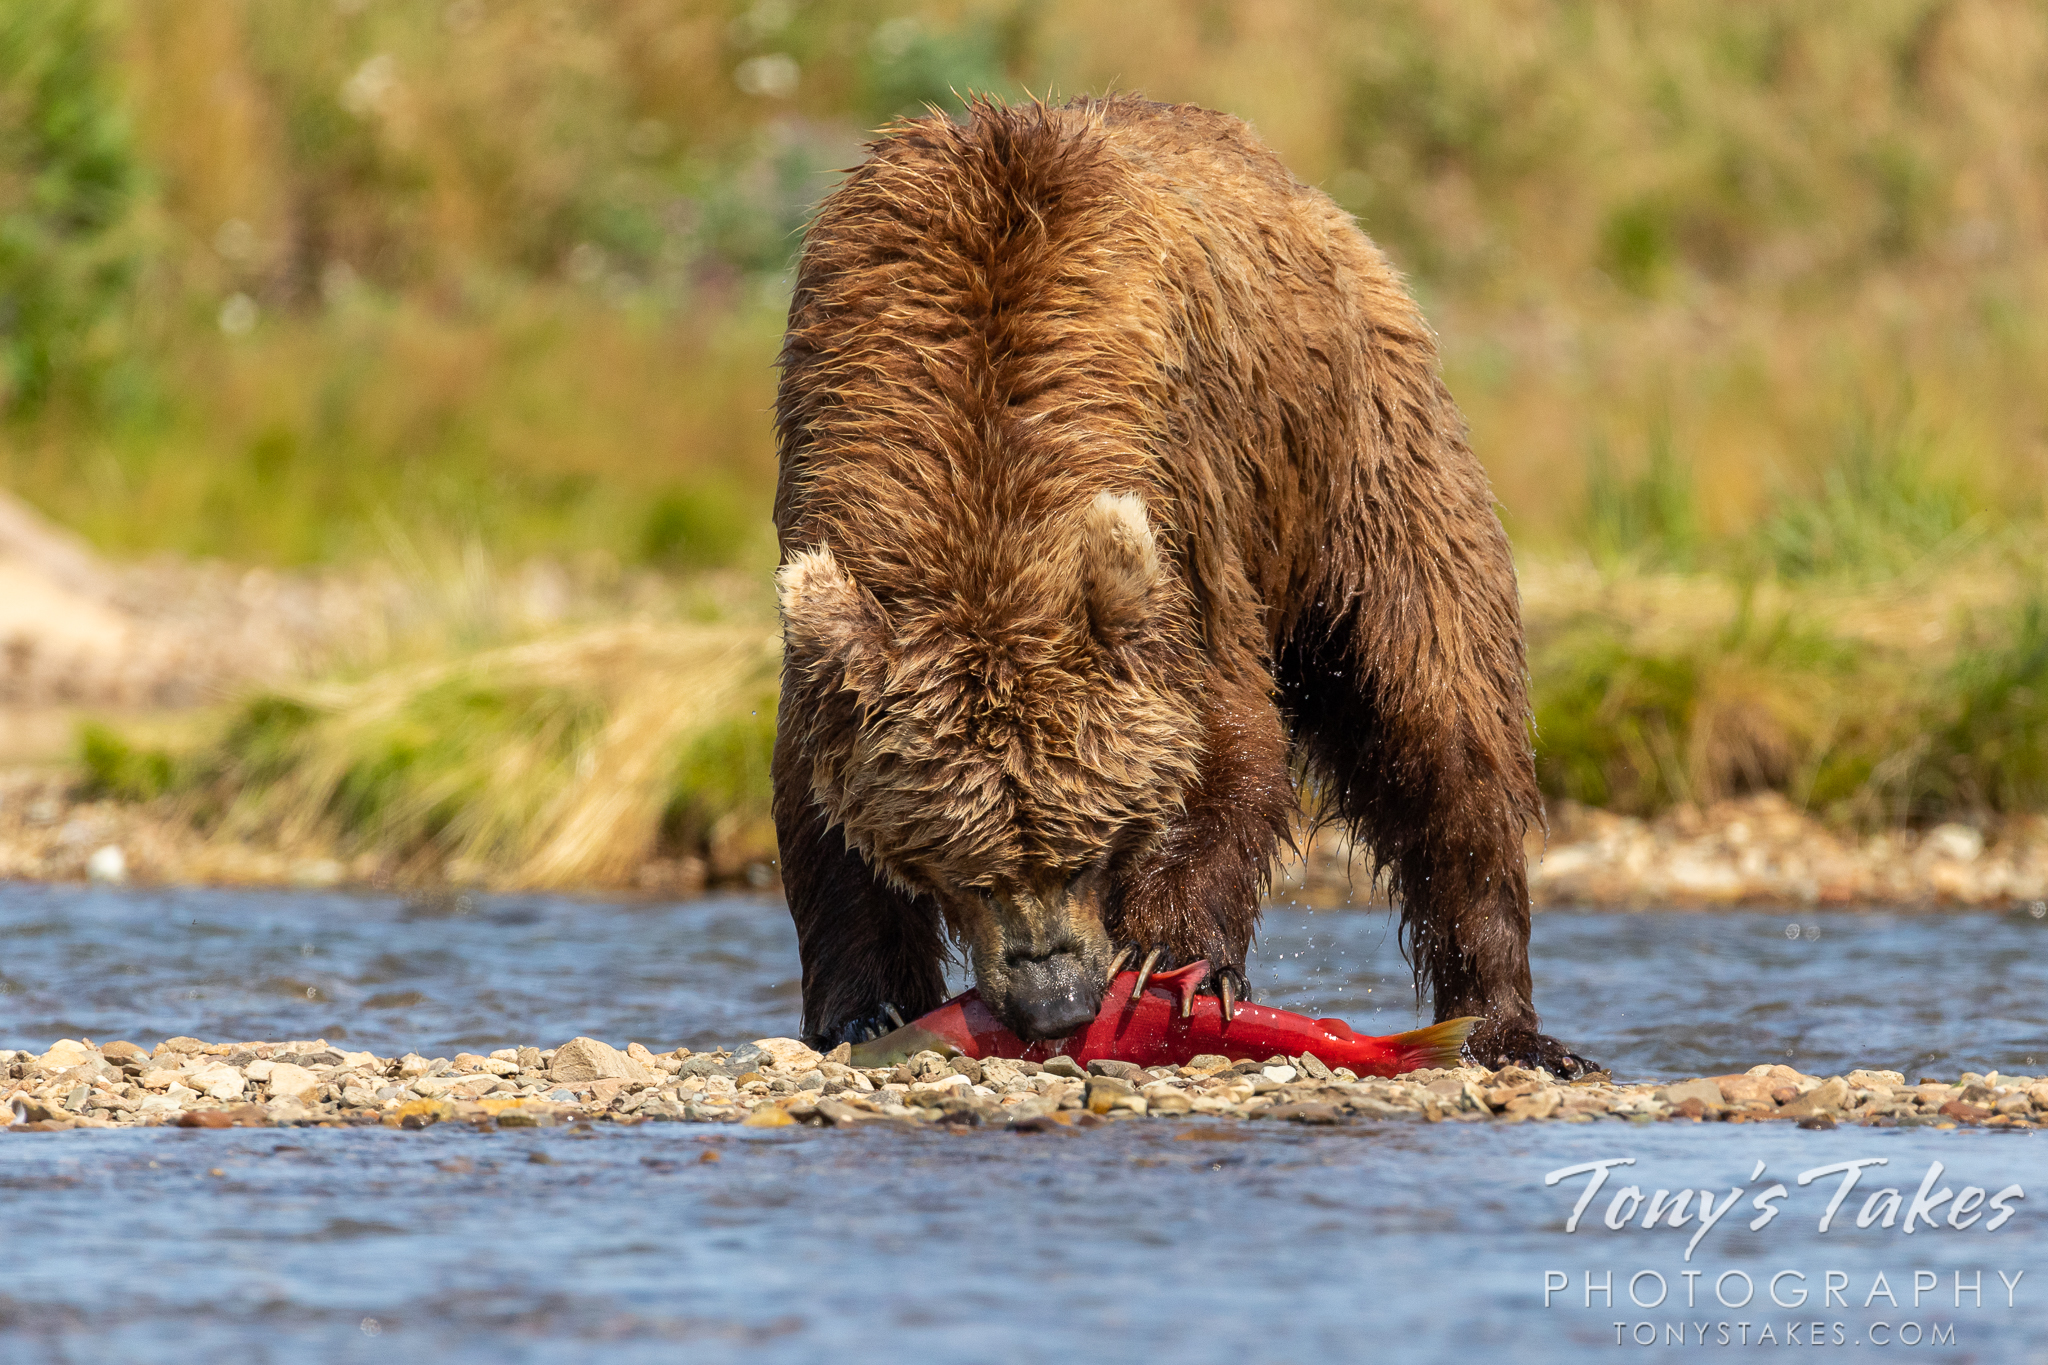 A coastal brown bear tears into a salmon it caught. (© Tony's Takes)